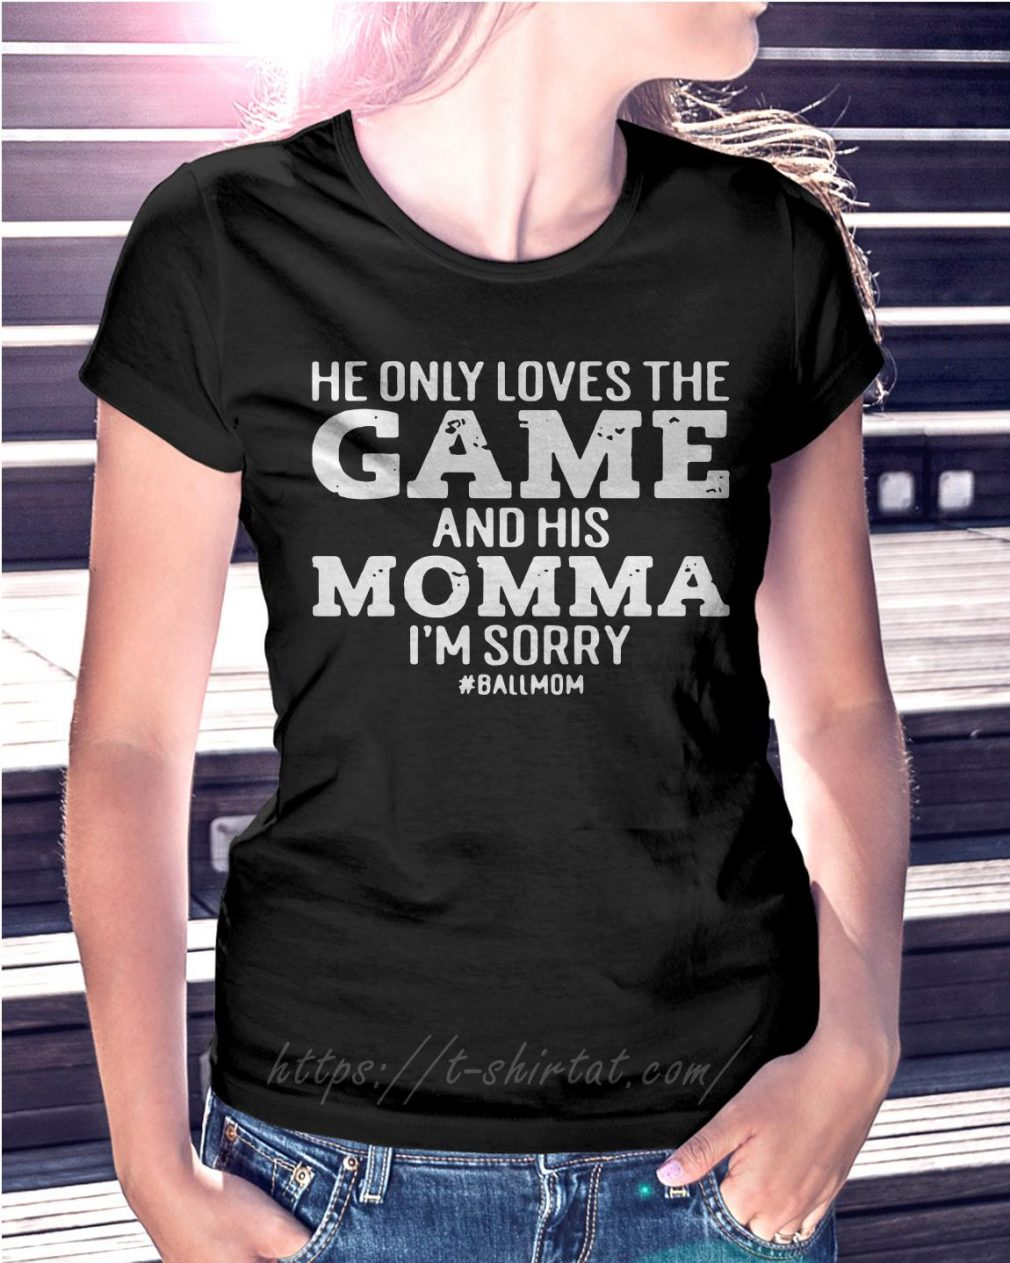 He only loves the game and his momma I'm sorry